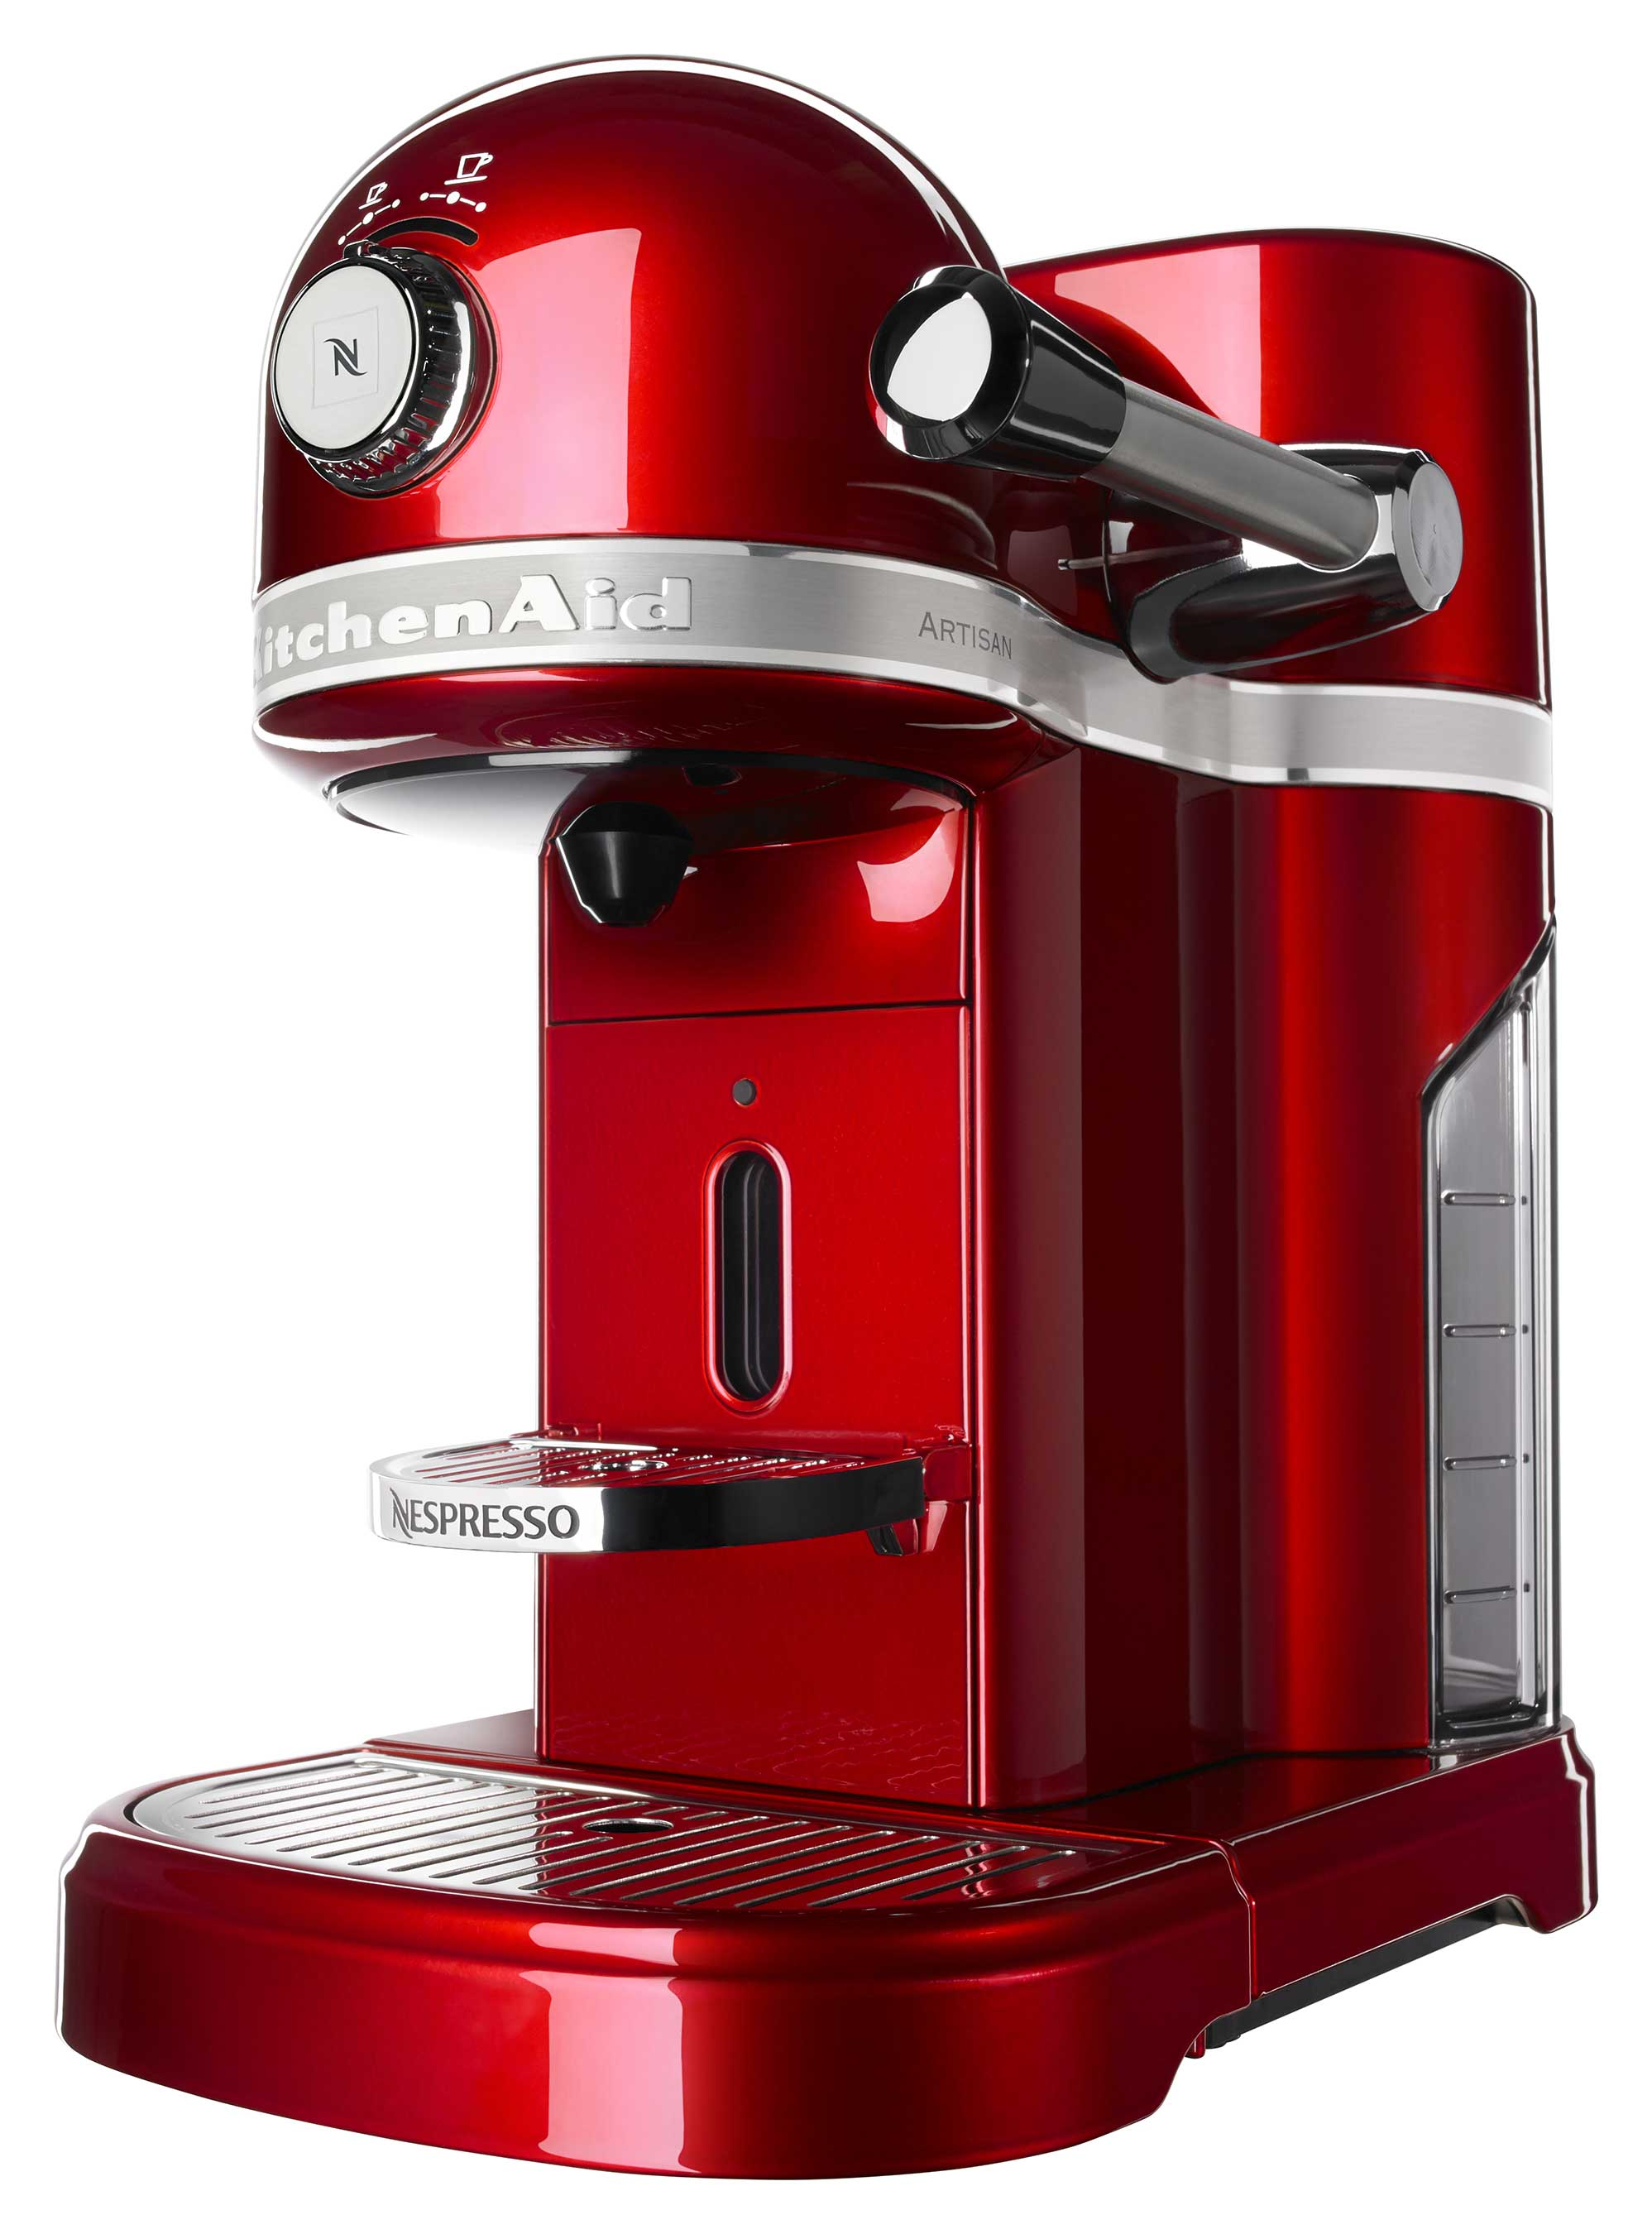 New High Performance Coffee Offerings From KitchenAid - Press ...